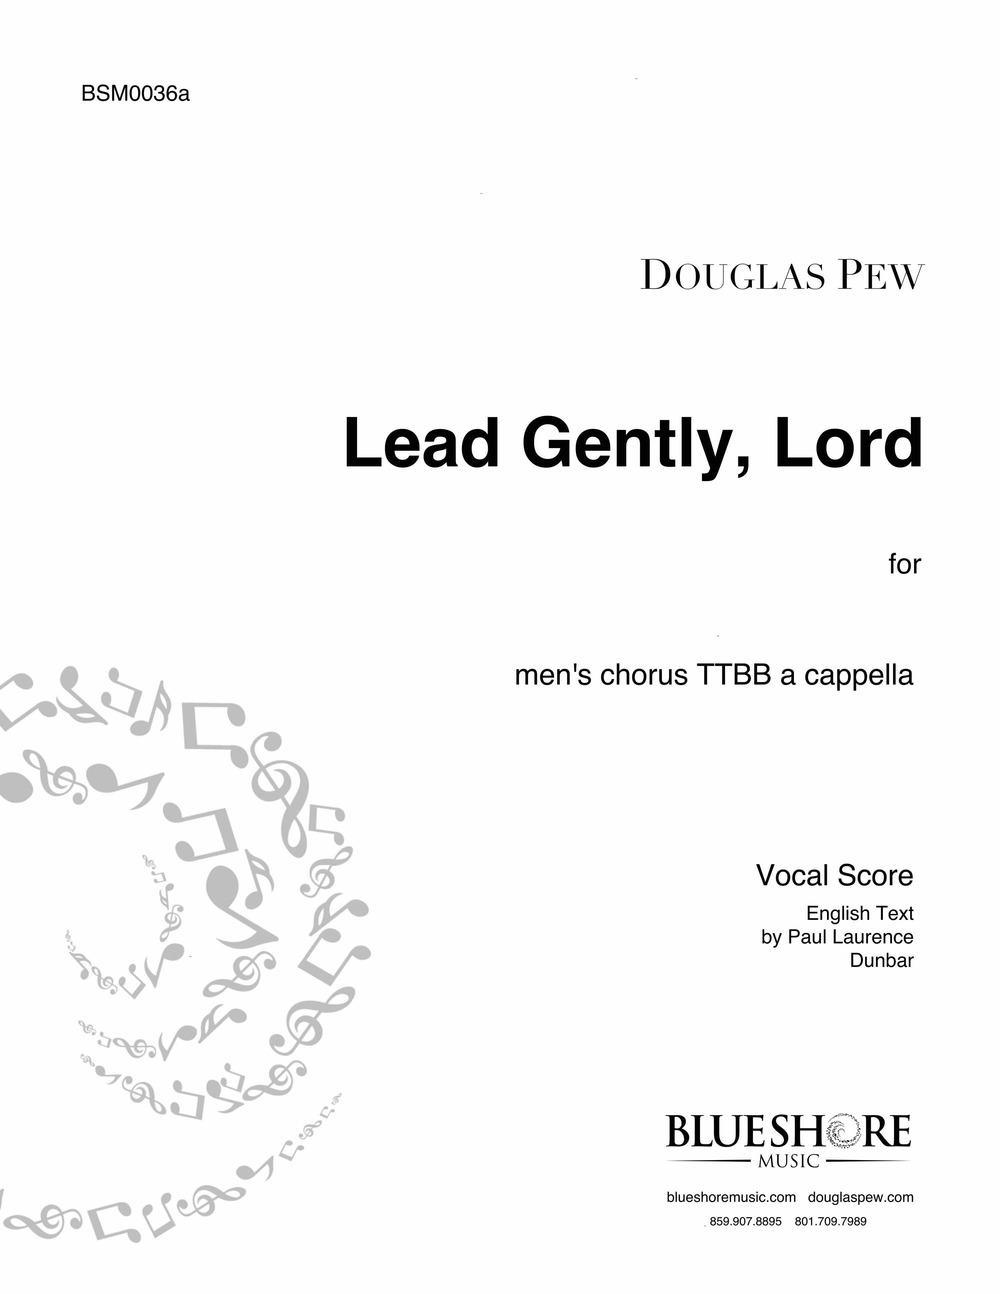 Lead Gently, Lord - TTTBBB a cappella